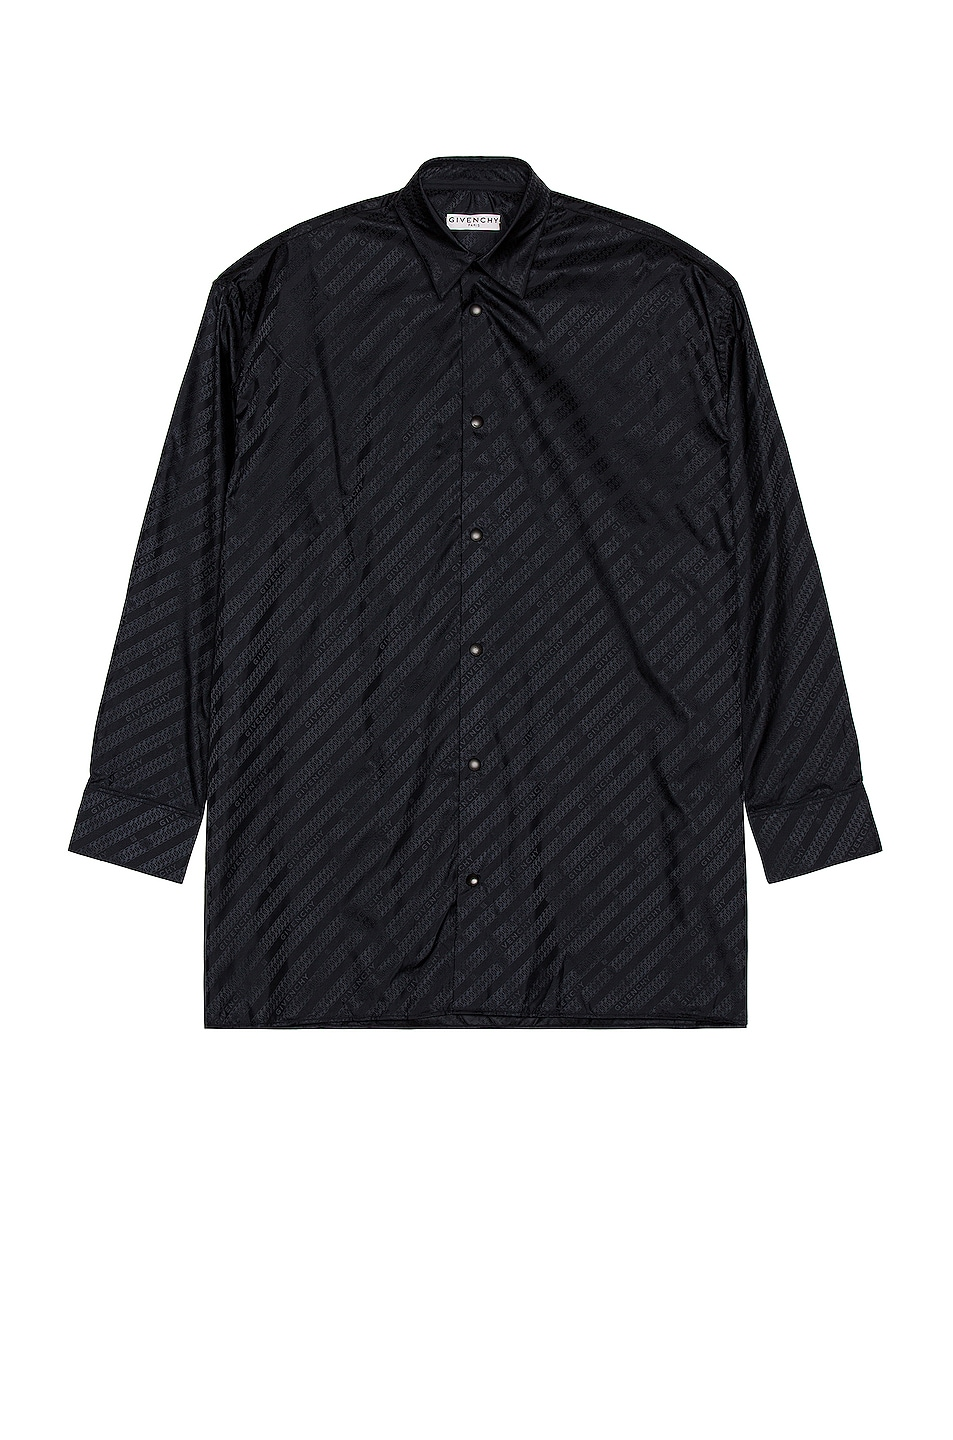 Image 1 of Givenchy Givenchy Chain Shirt in Black